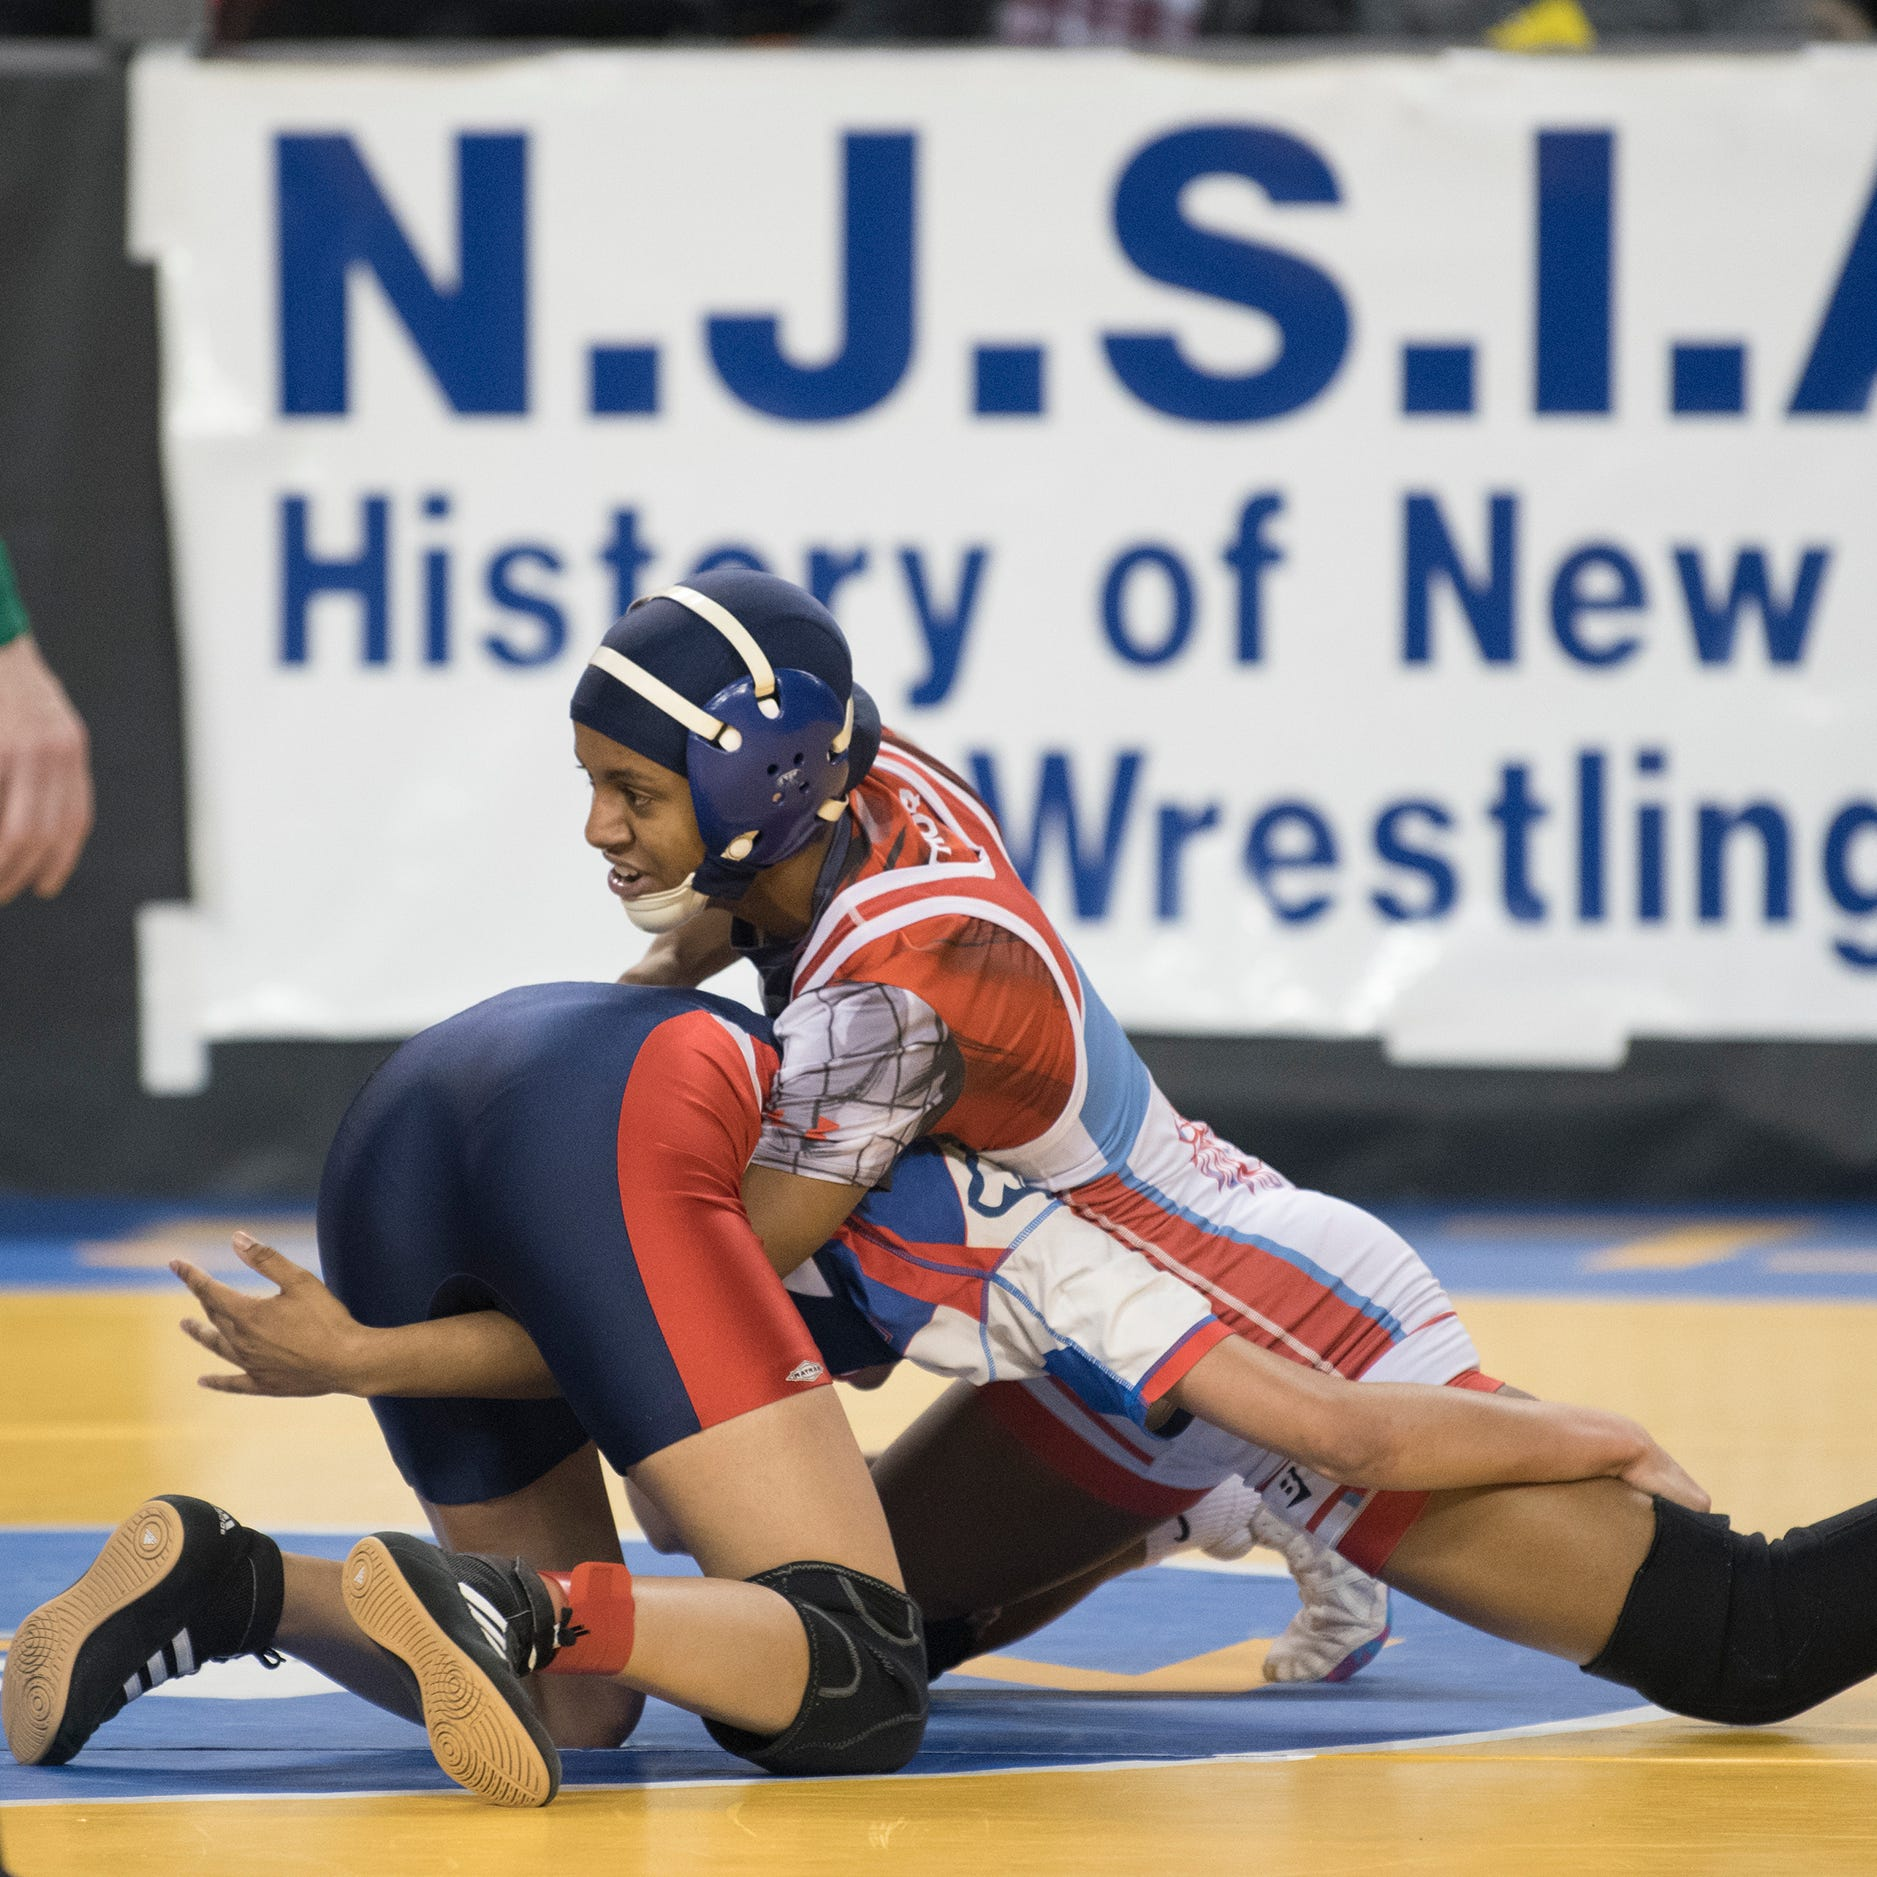 H.S wrestling: Pennsauken's Lebron makes history at first-ever girls' state tourney